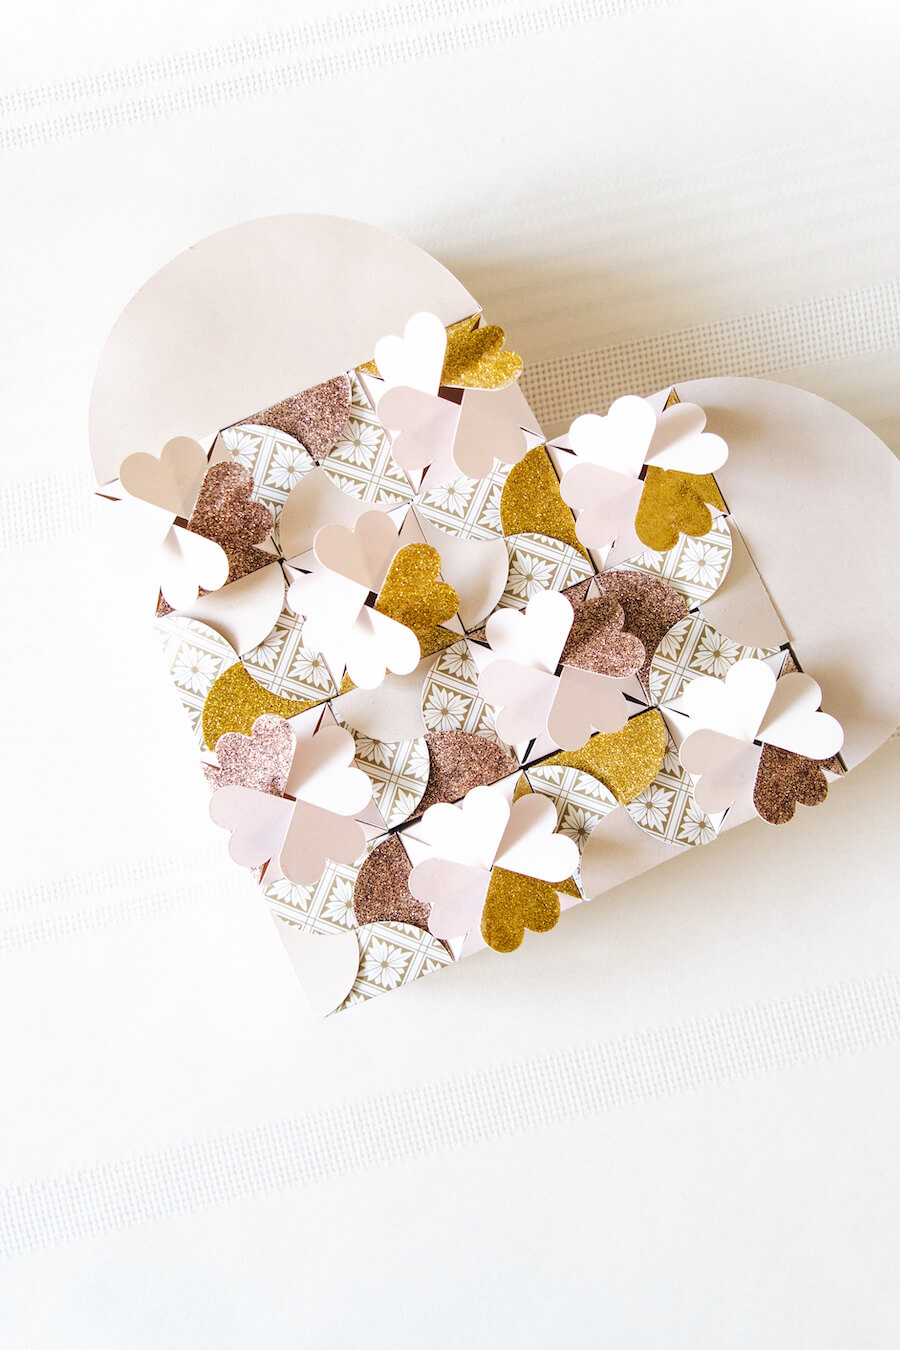 The design of this DIY heart-shaped box is comprised of 15 miniature boxes made from two different (and free!) gift box SVG designs.